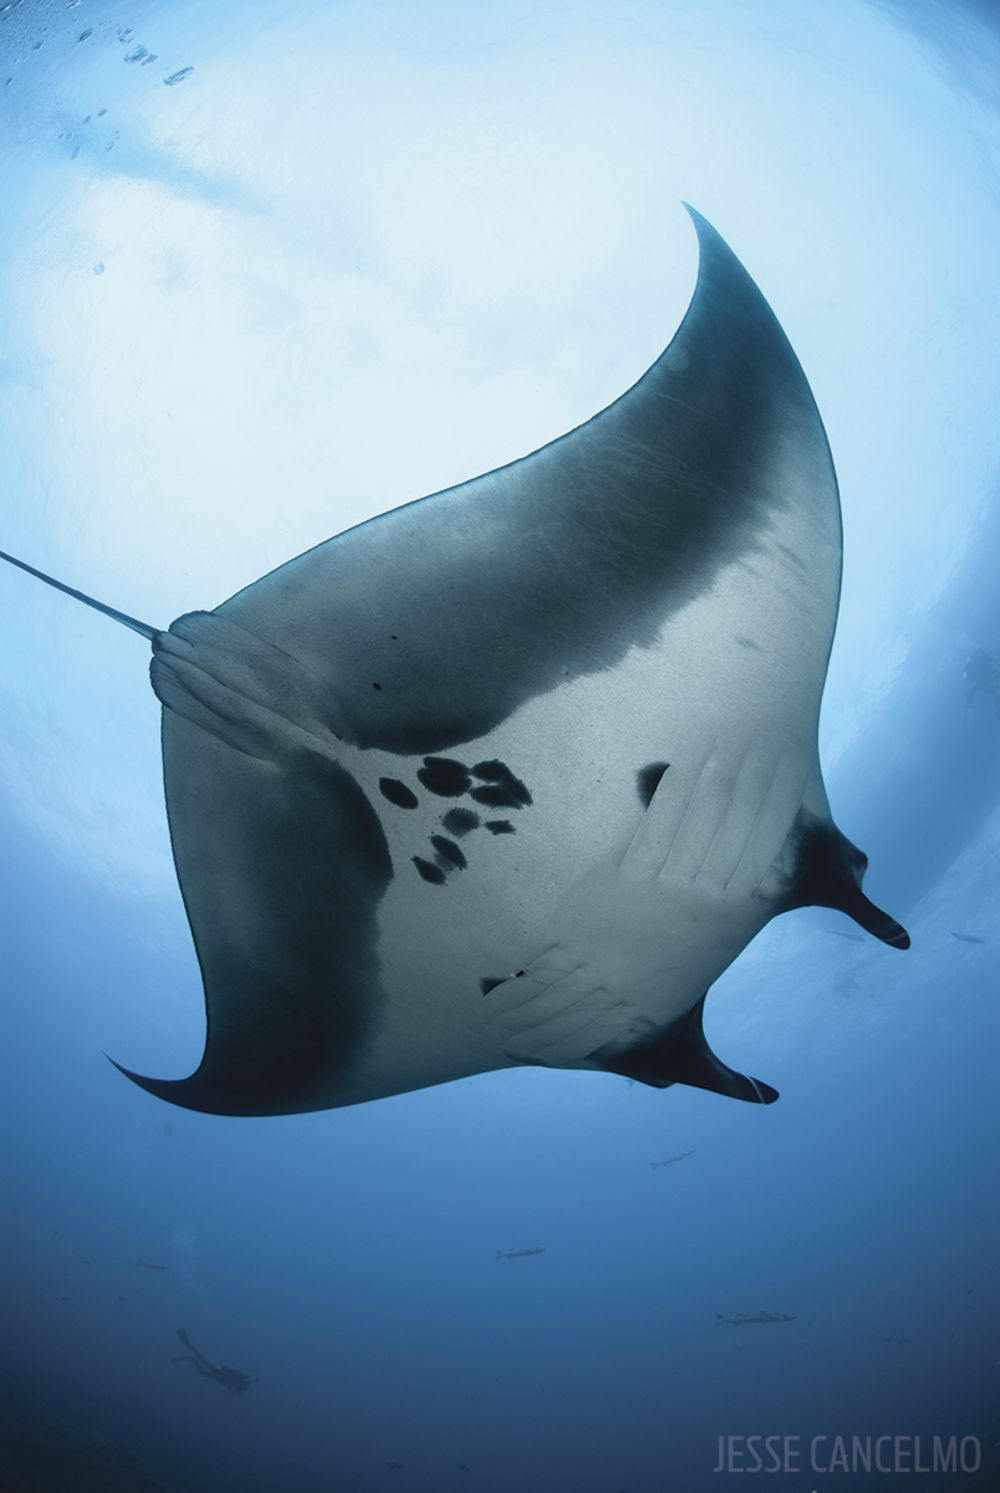 Manta ray swimming underwater with its dorsal fins spread open viewed - Manta Underwater Photo Gulf Of Mexico Flower Garden Banks